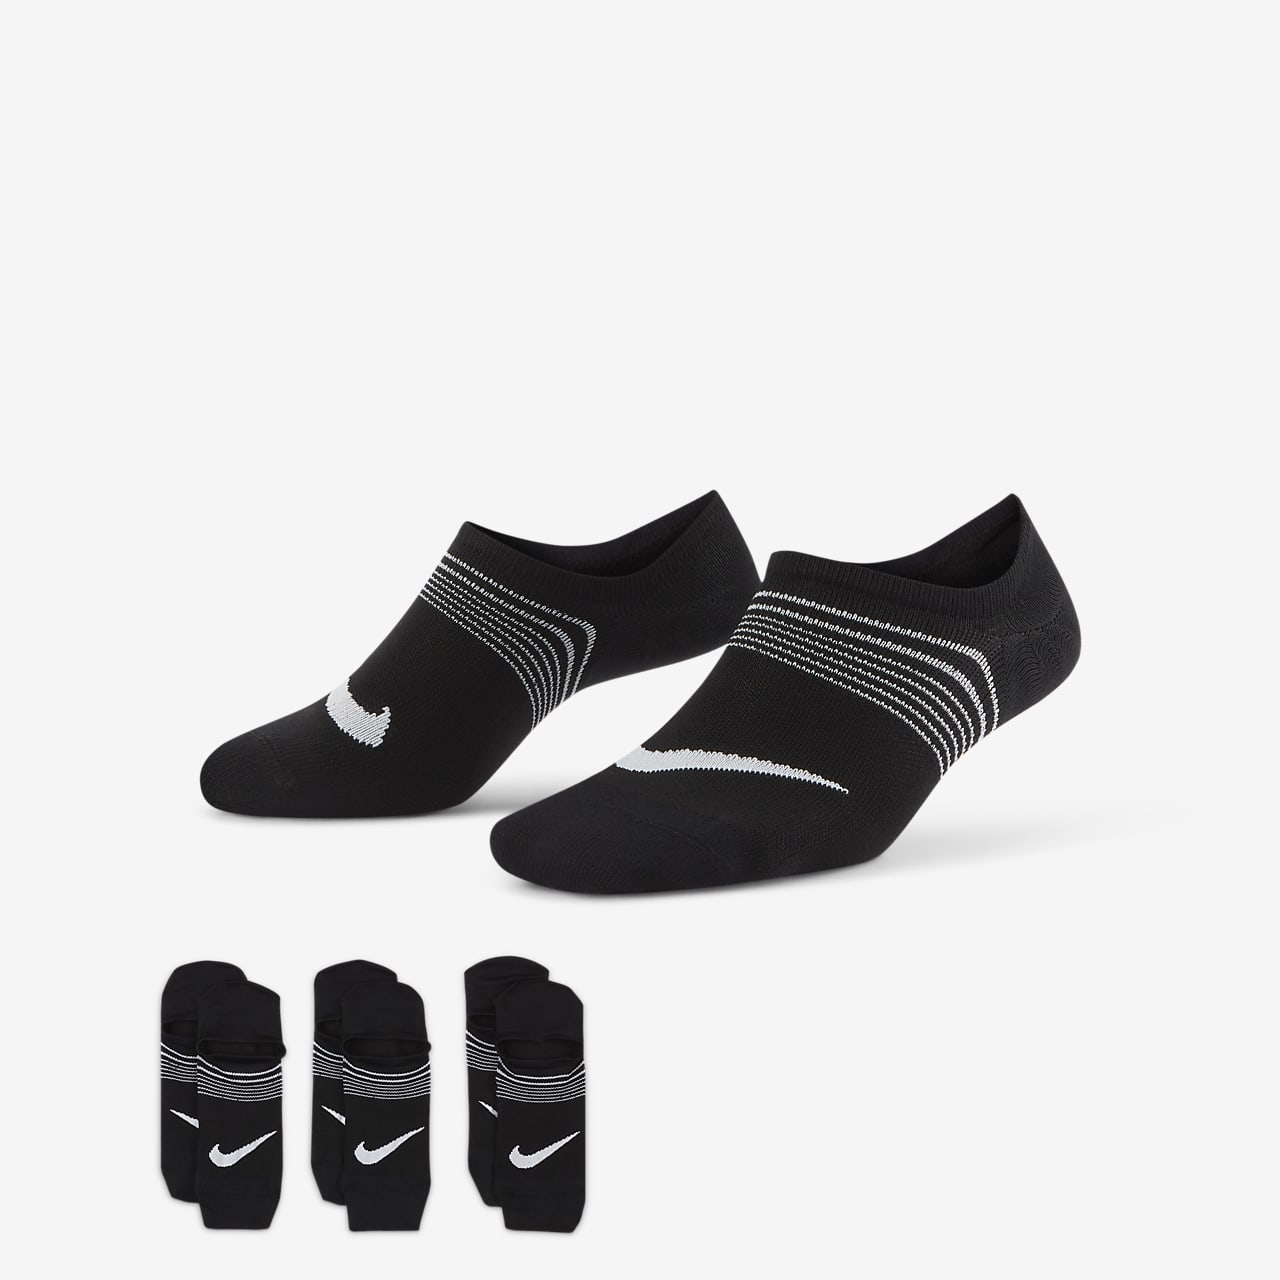 Nike Lightweight Training Socks (3 Pair)